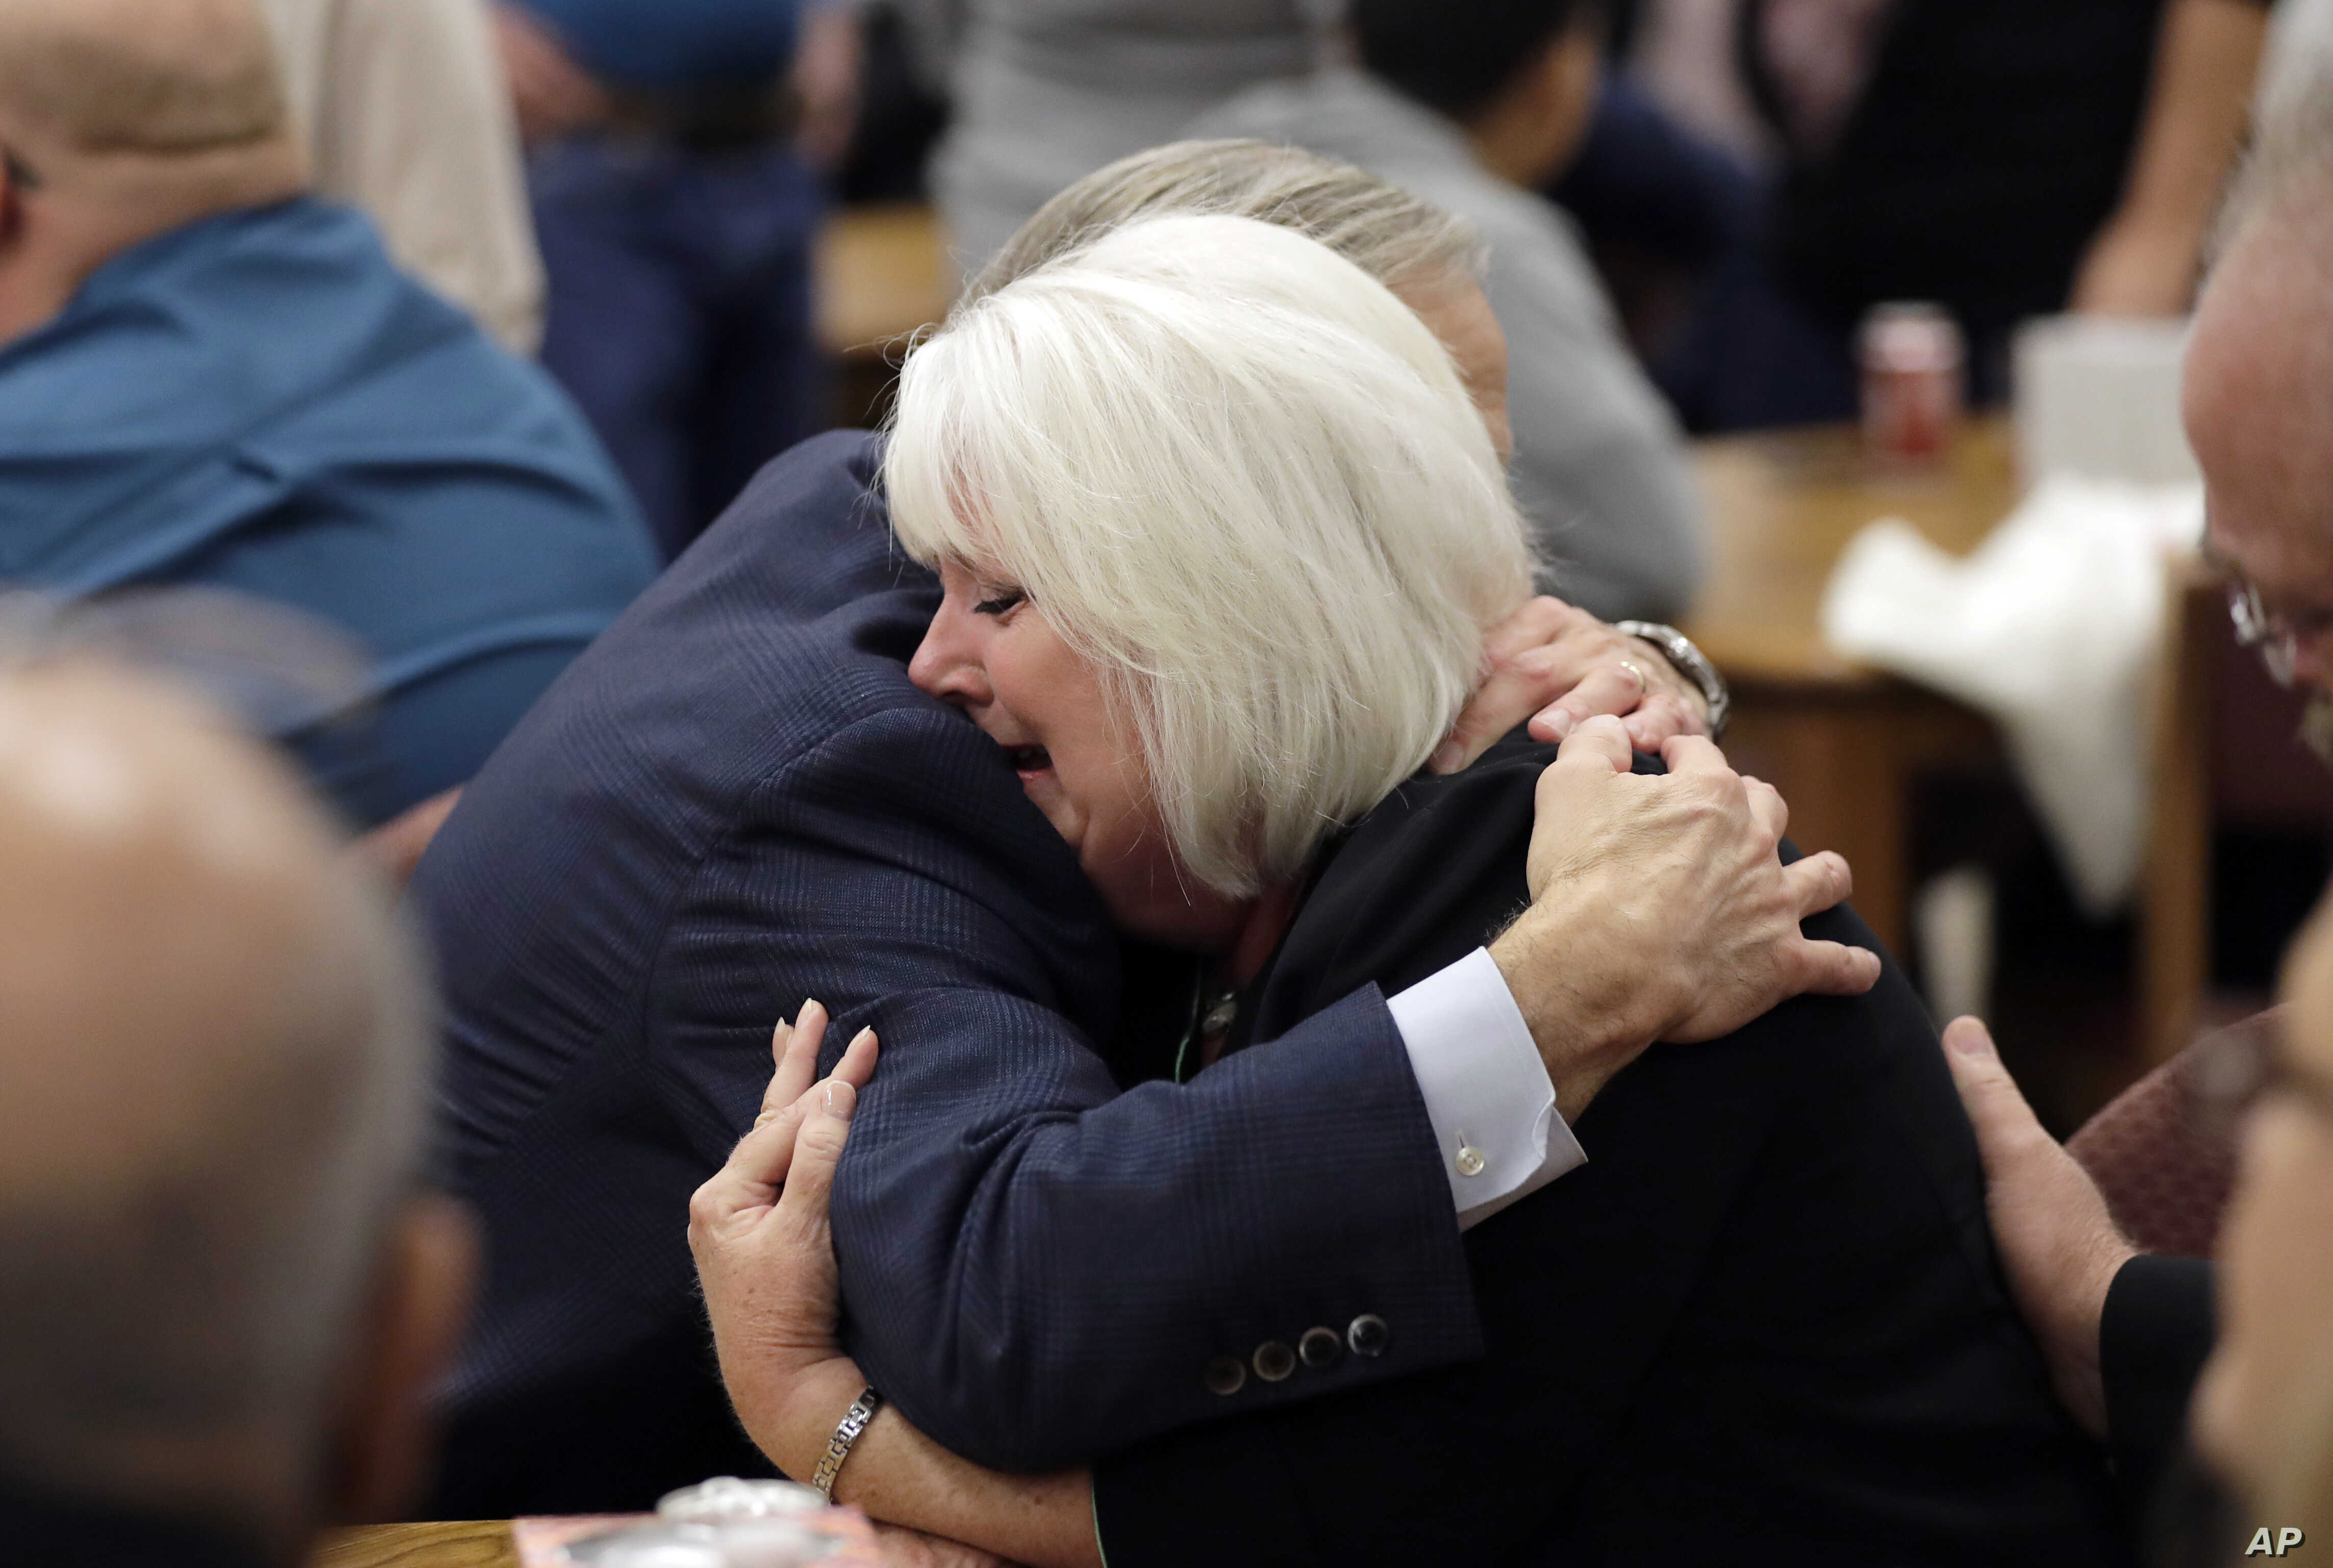 Texas Gov. Greg Abbott, left, hugs a woman as he visits with family and victims before a vigil, Nov. 8, 2017, in Floresville, Texas. A man opened fire inside a church in the small South Texas community of Sutherland Springs on Sunday, killing 26 woun